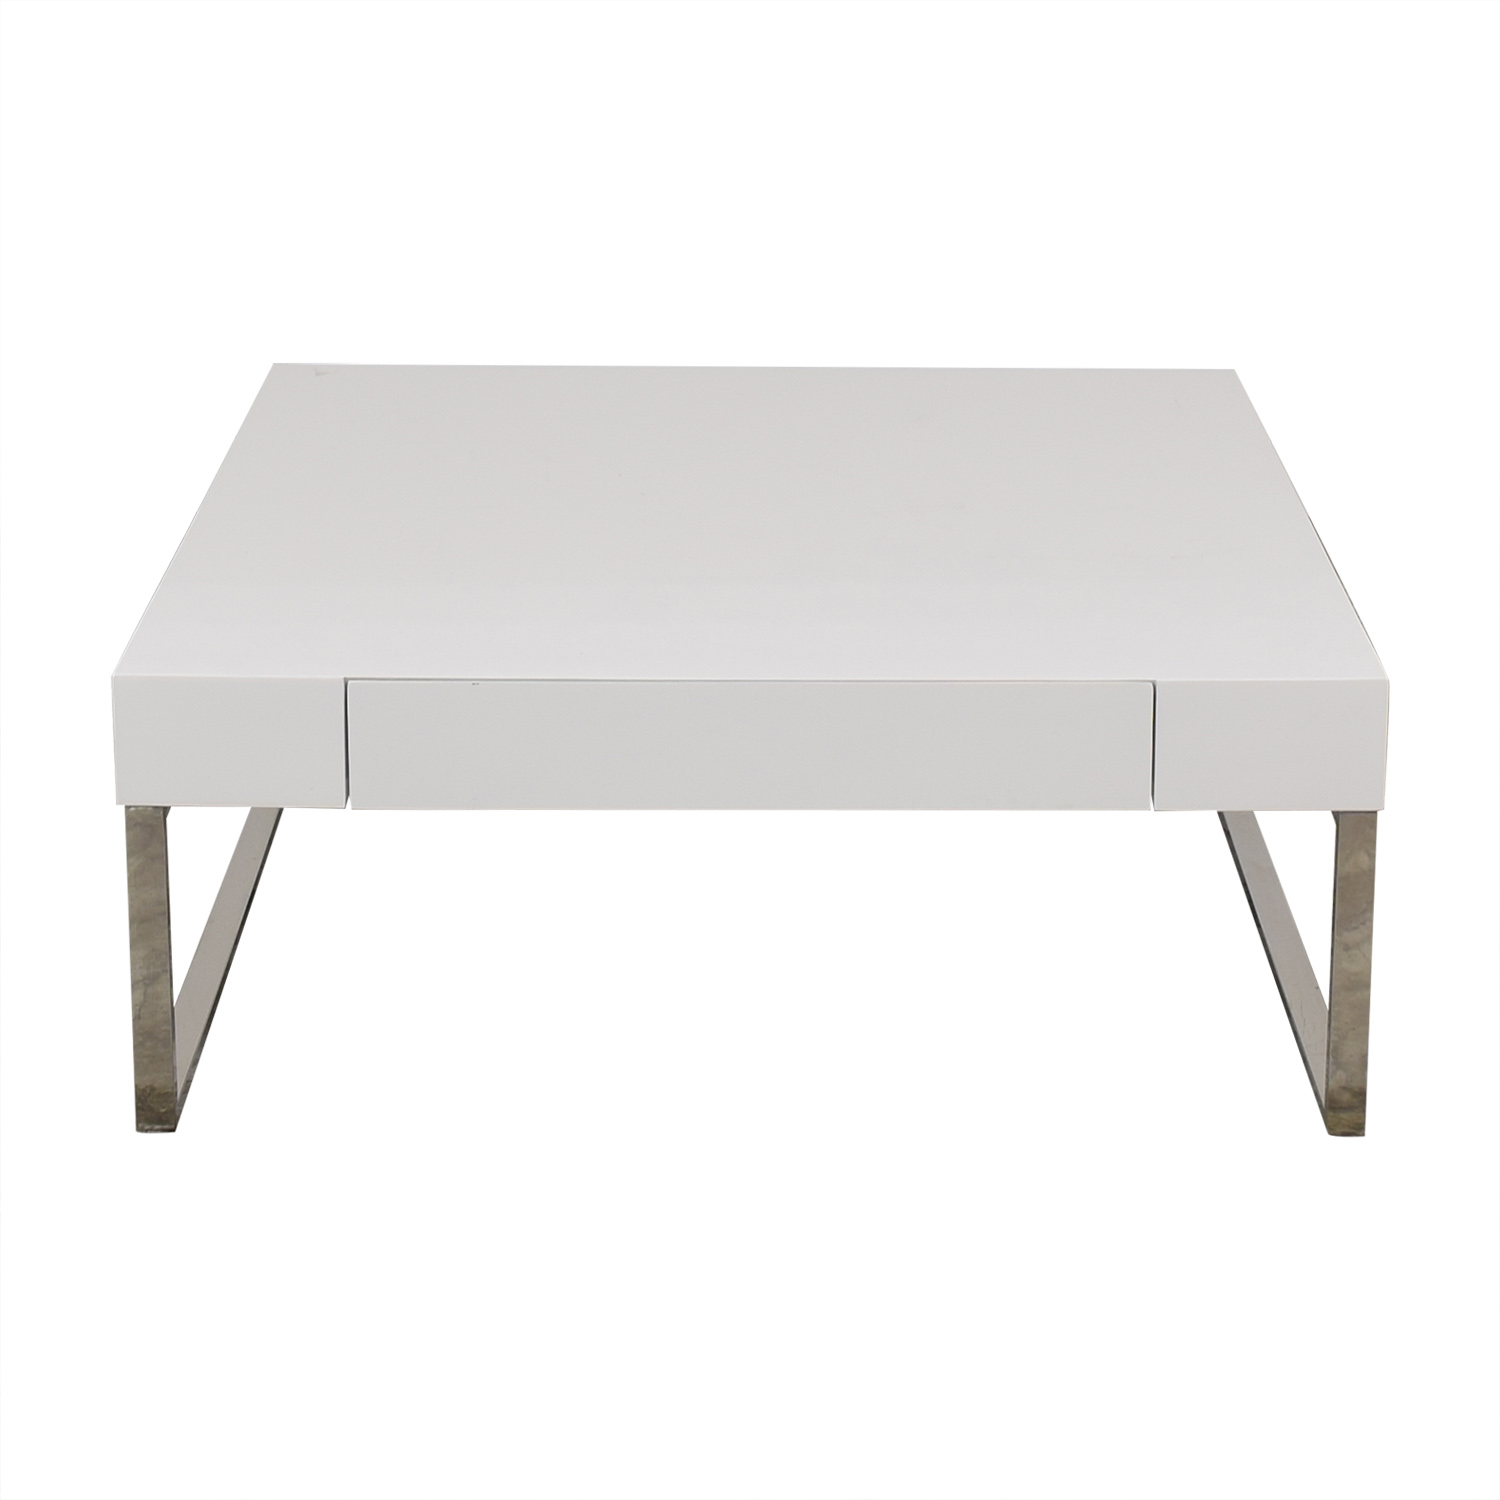 Modani Modani Gavino Coffee Table used